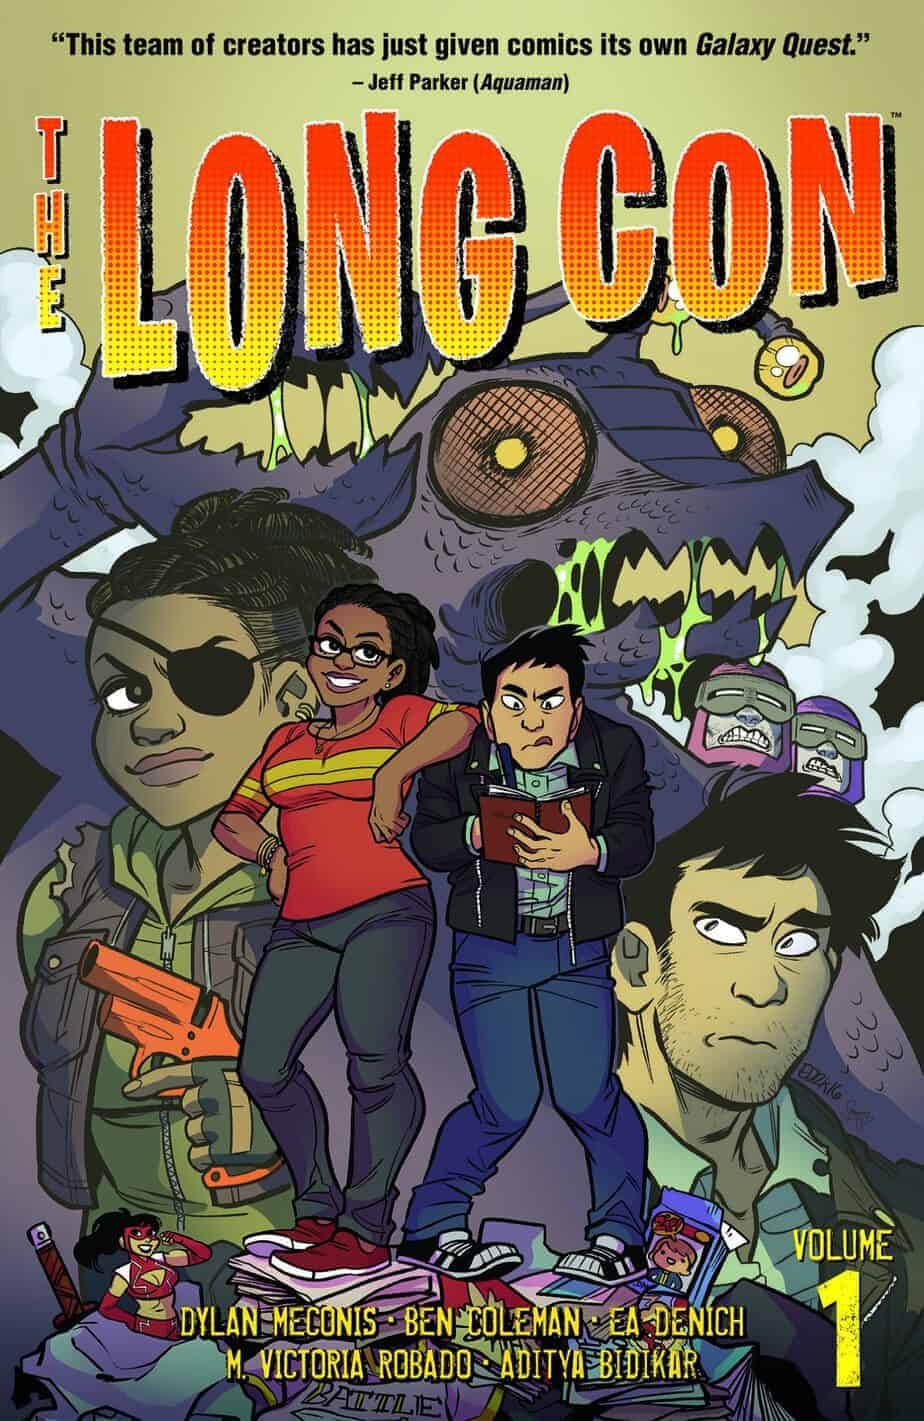 The Long Con Vol. 1 TPB cover